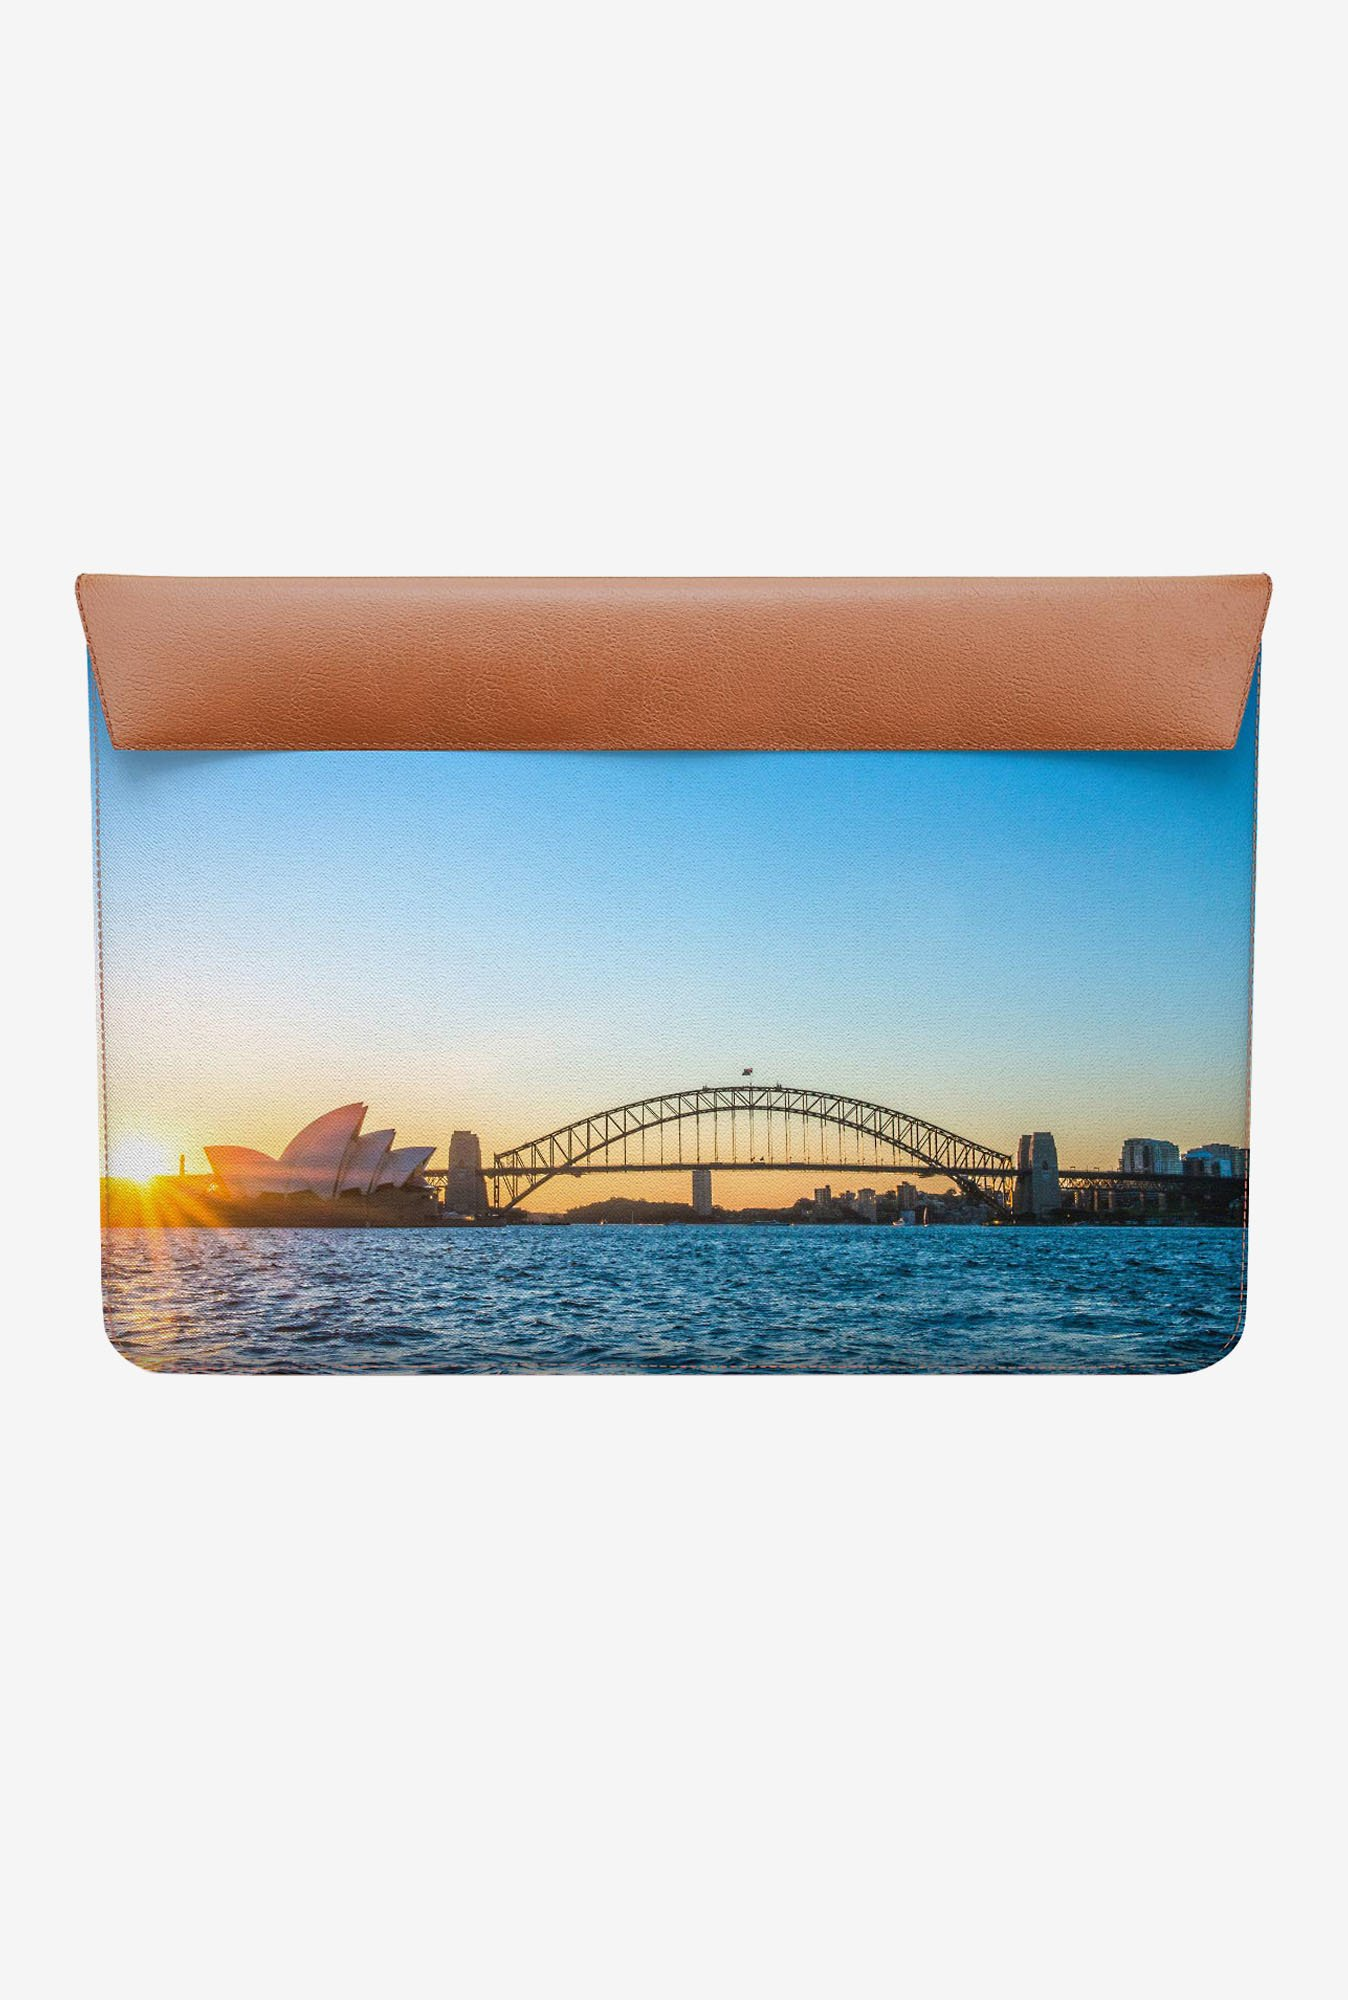 DailyObjects Opera House MacBook Air 13 Envelope Sleeve